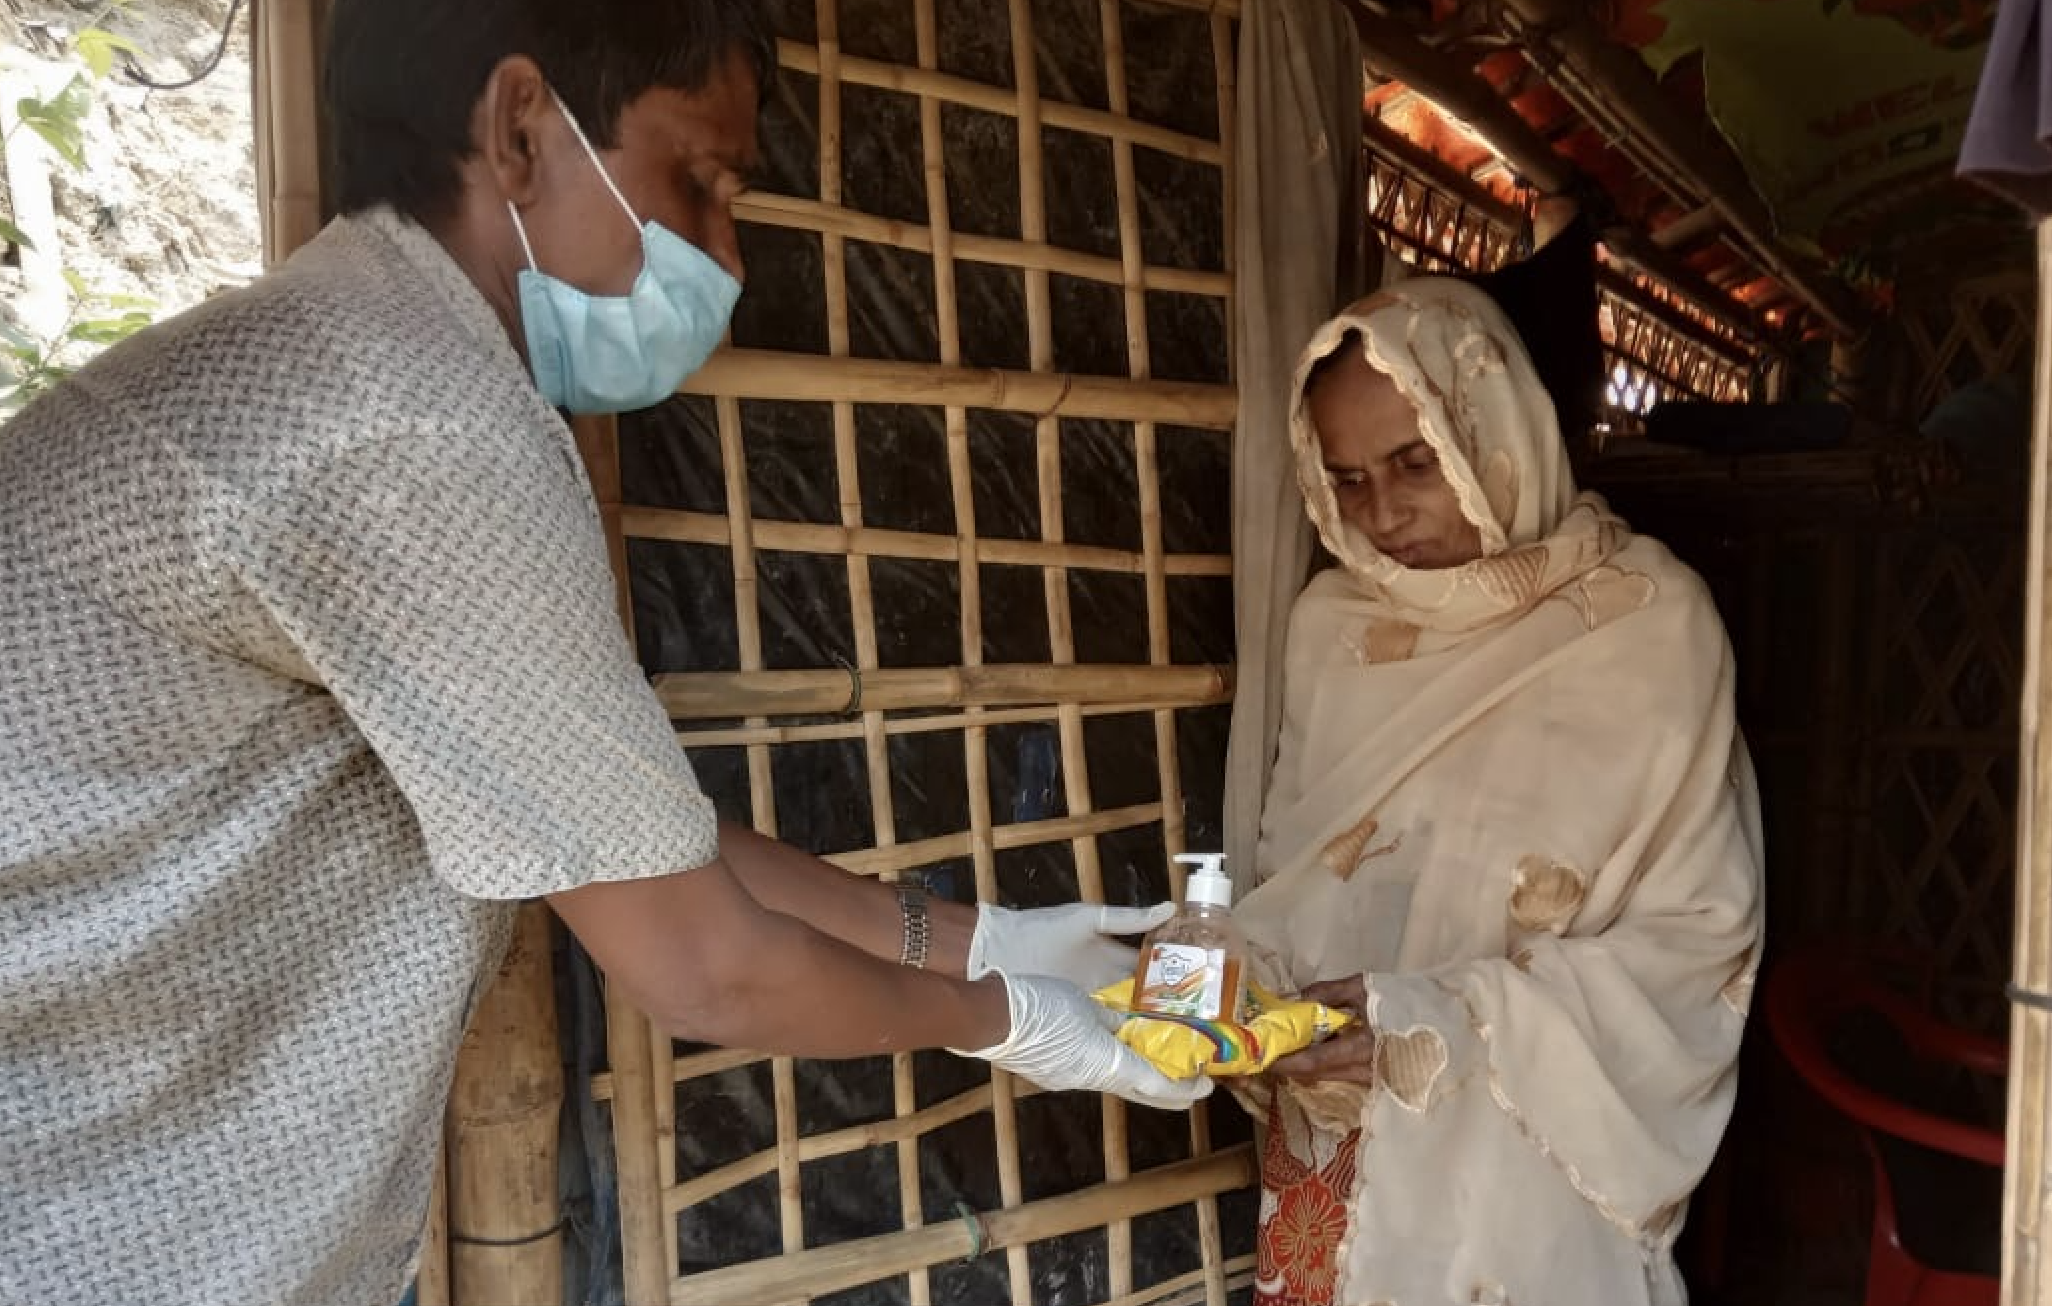 A health worker handing out antibacterial gel and other equipment to at risk older people in the communities during the coronavirus crisis